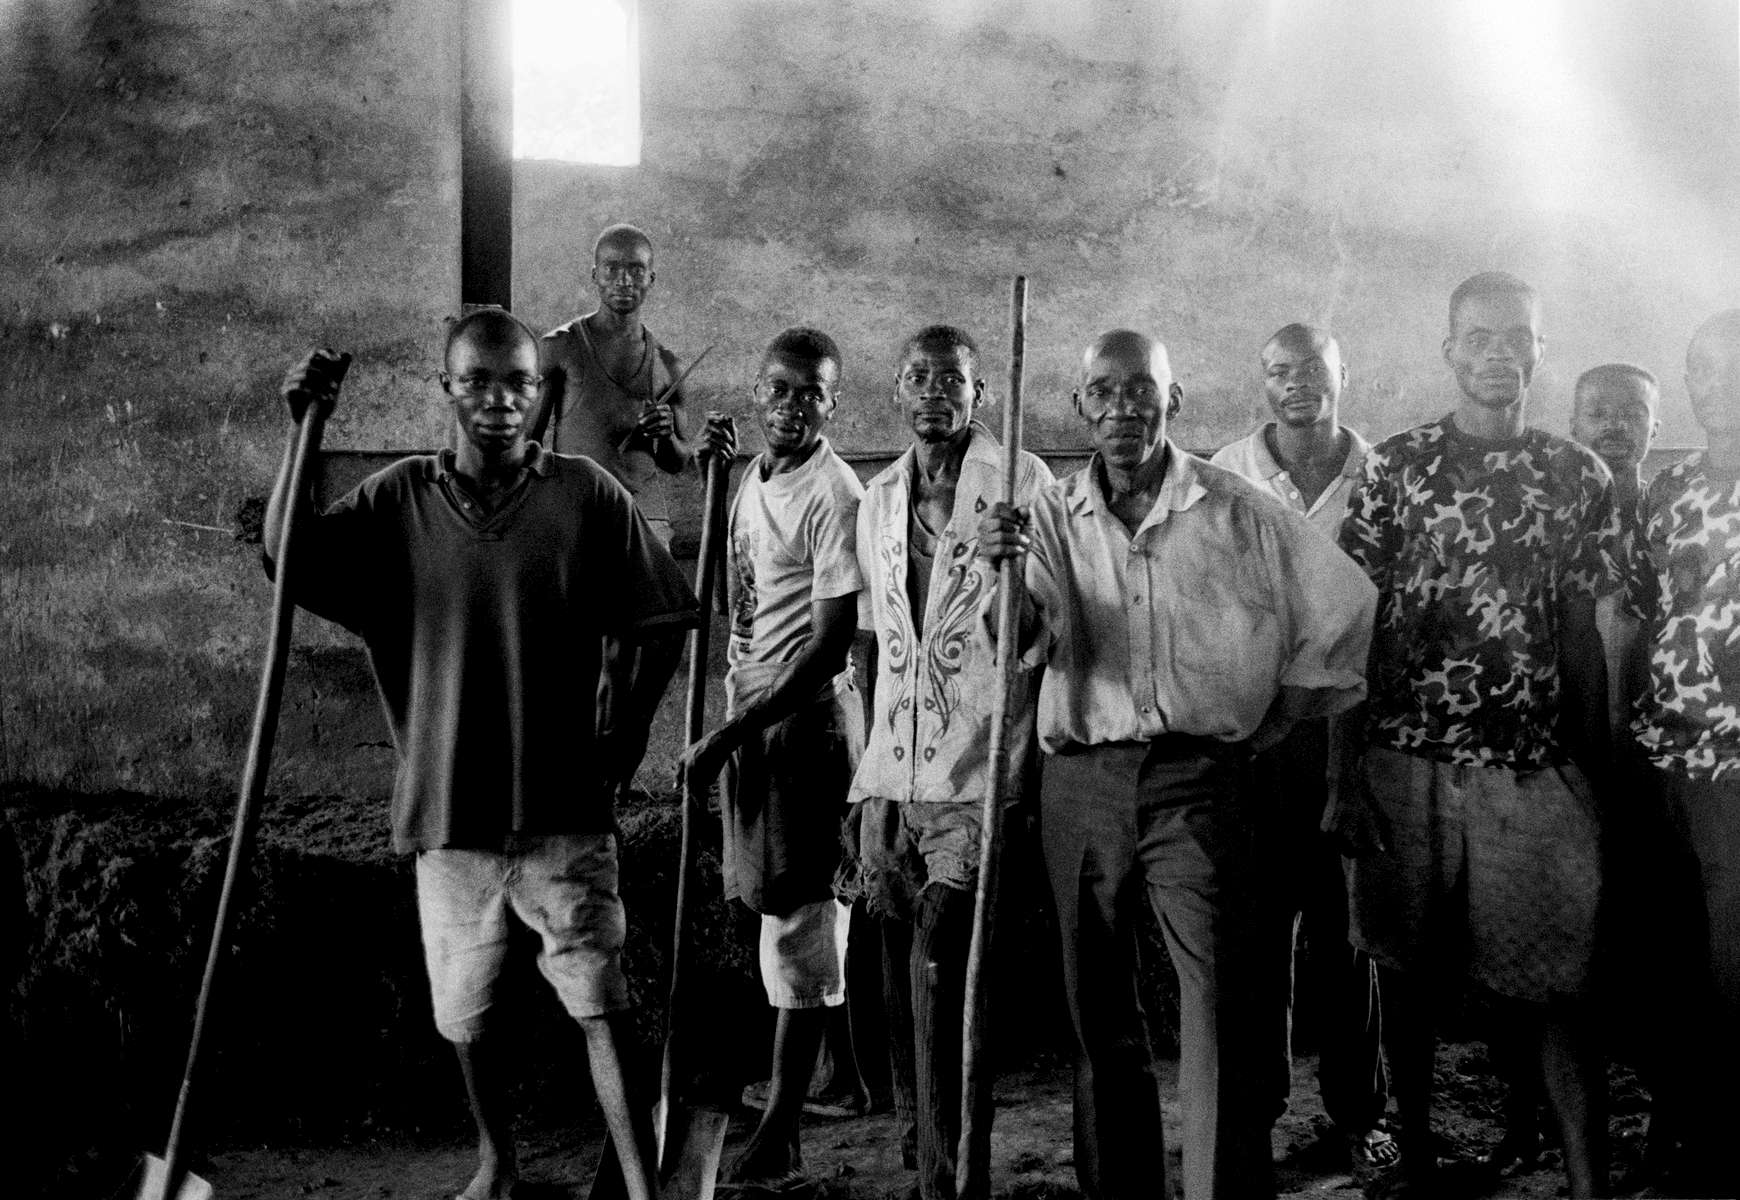 Palm Oil factory workers in Lisafa, DRCongo 2002